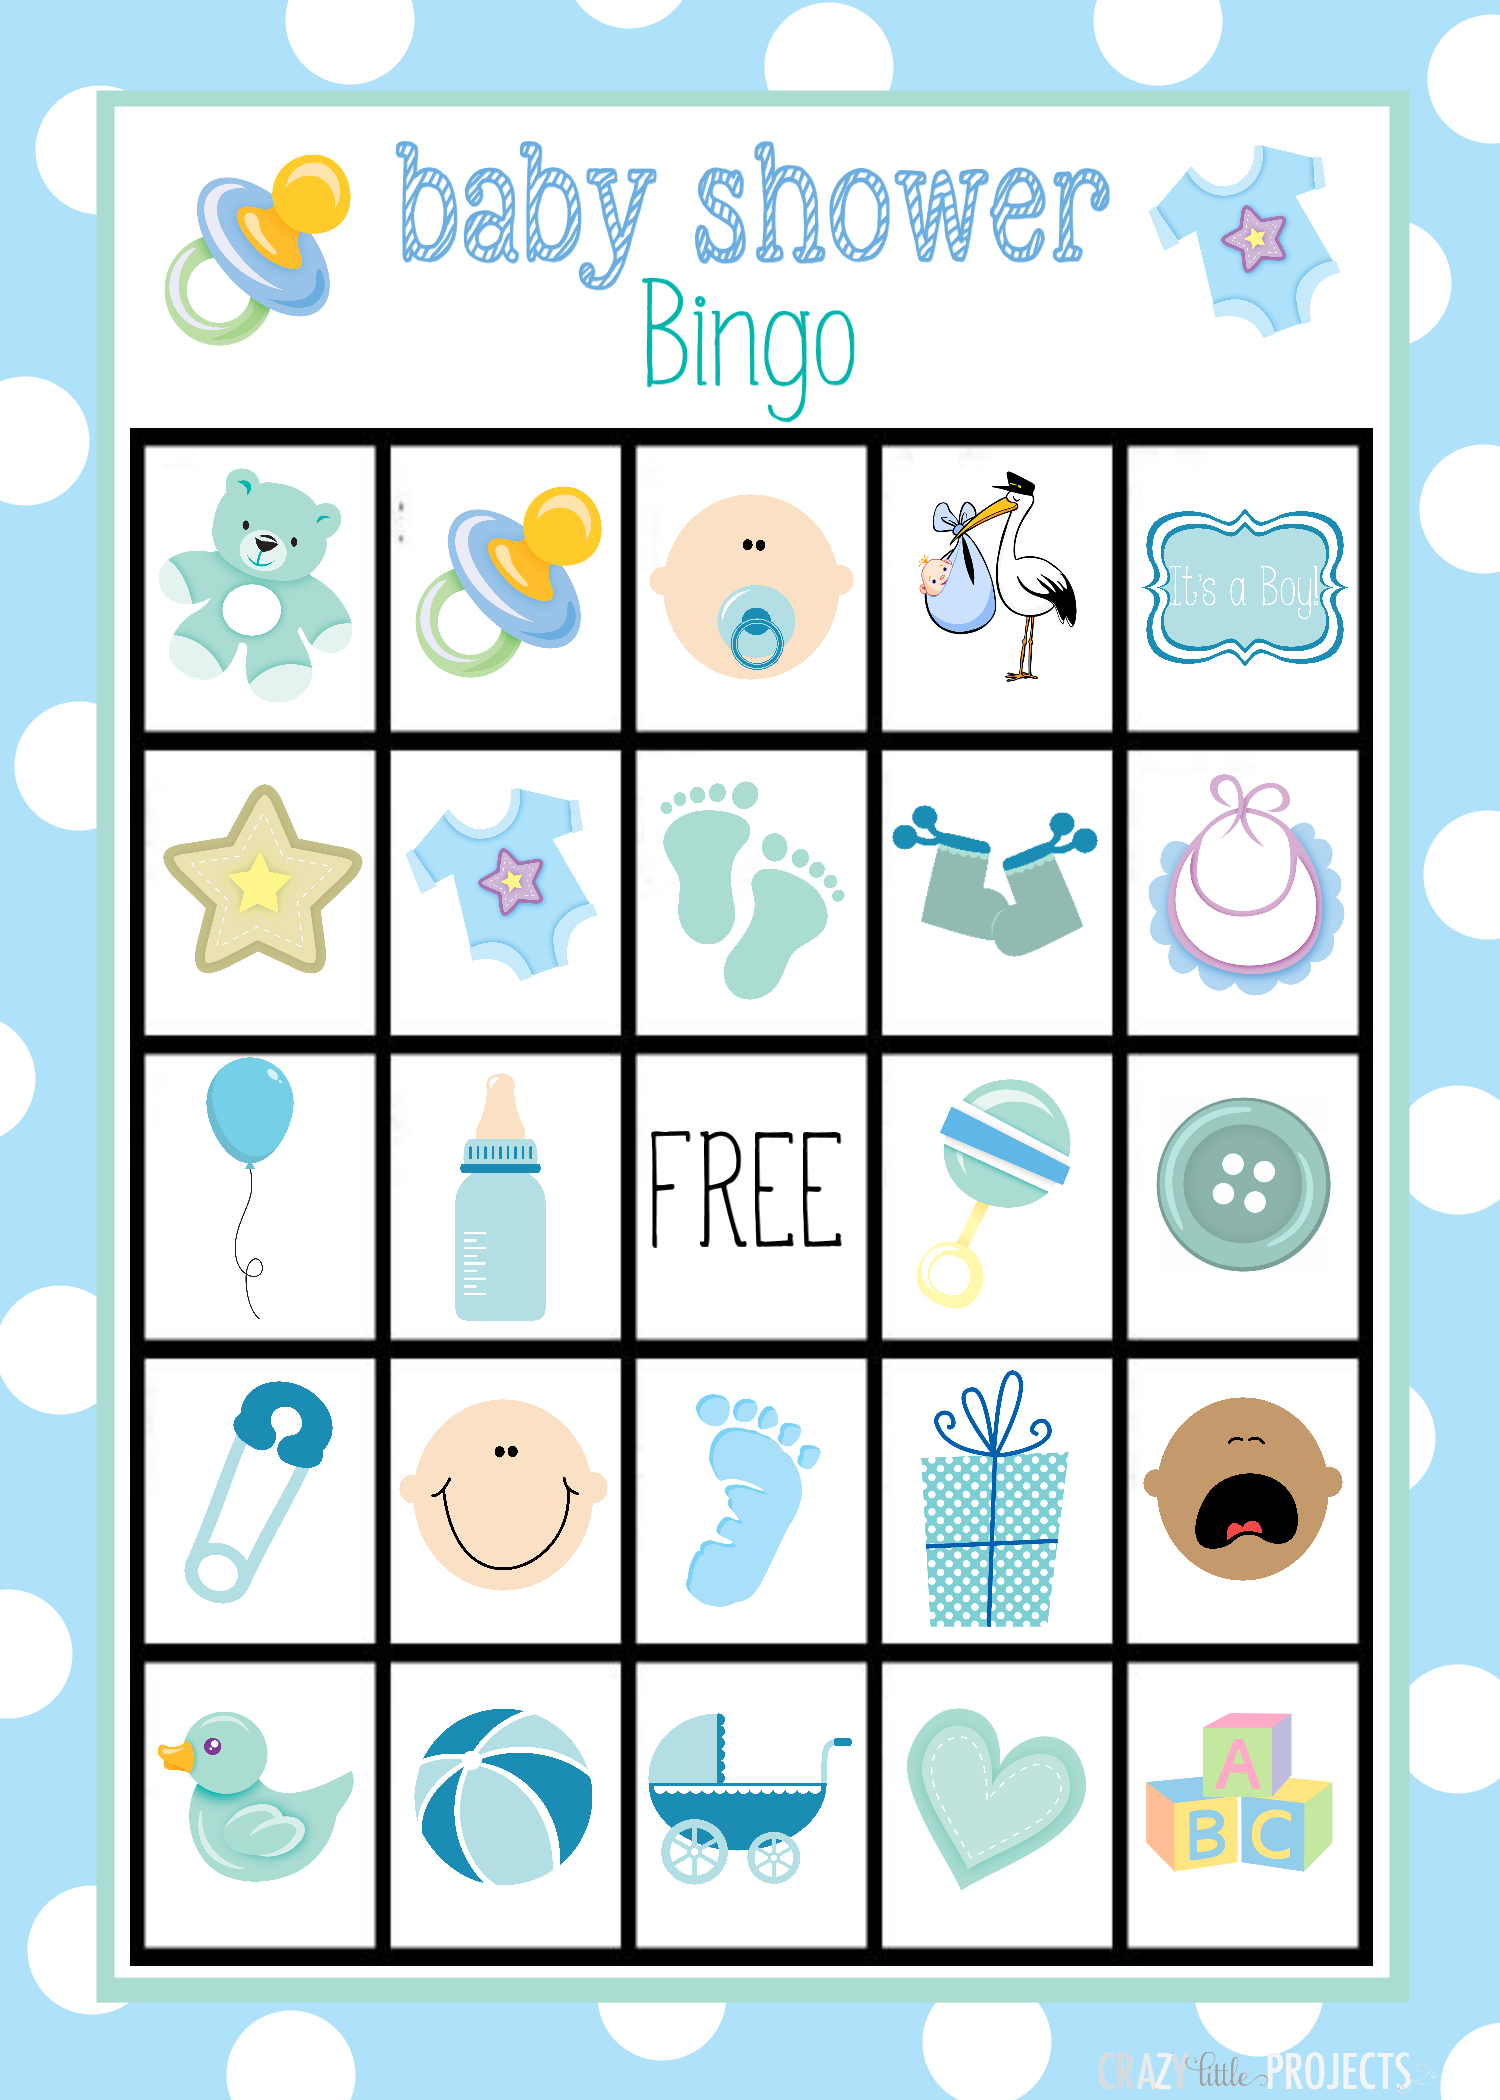 Baby Shower Bingo Cards - Baby Bingo Game Free Printable